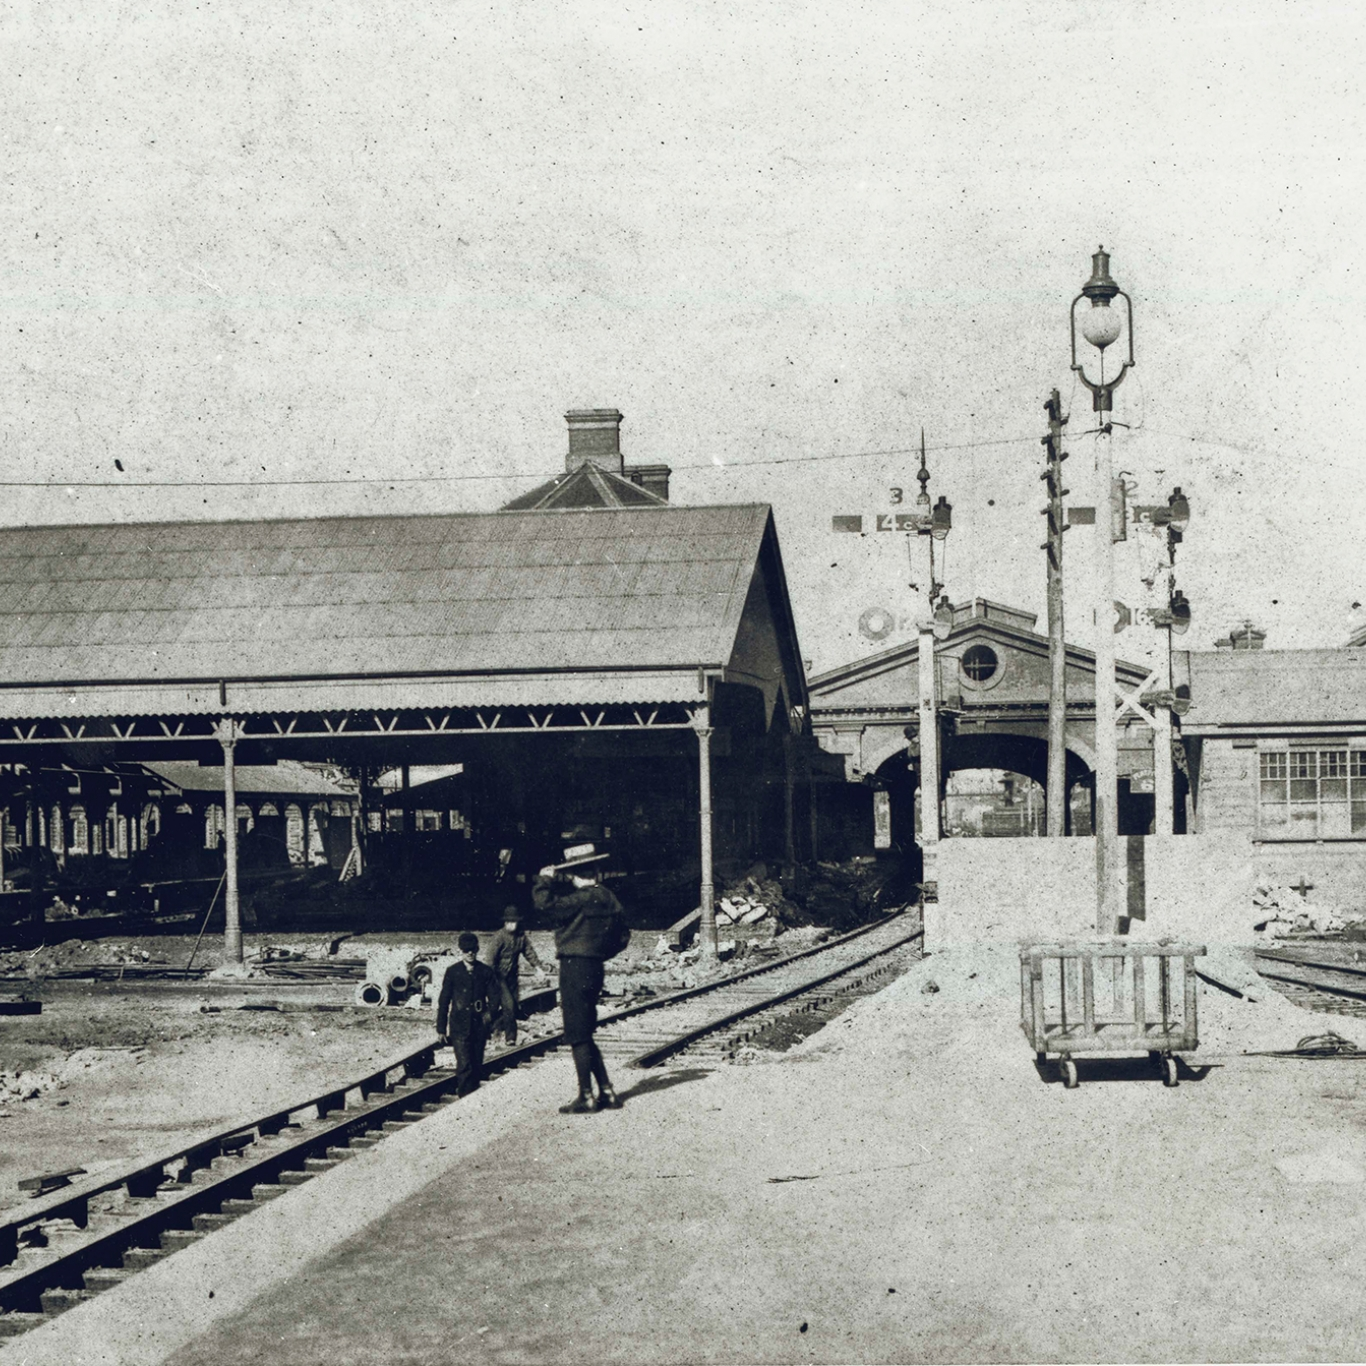 Black and white view of tracks leading into station buildings.